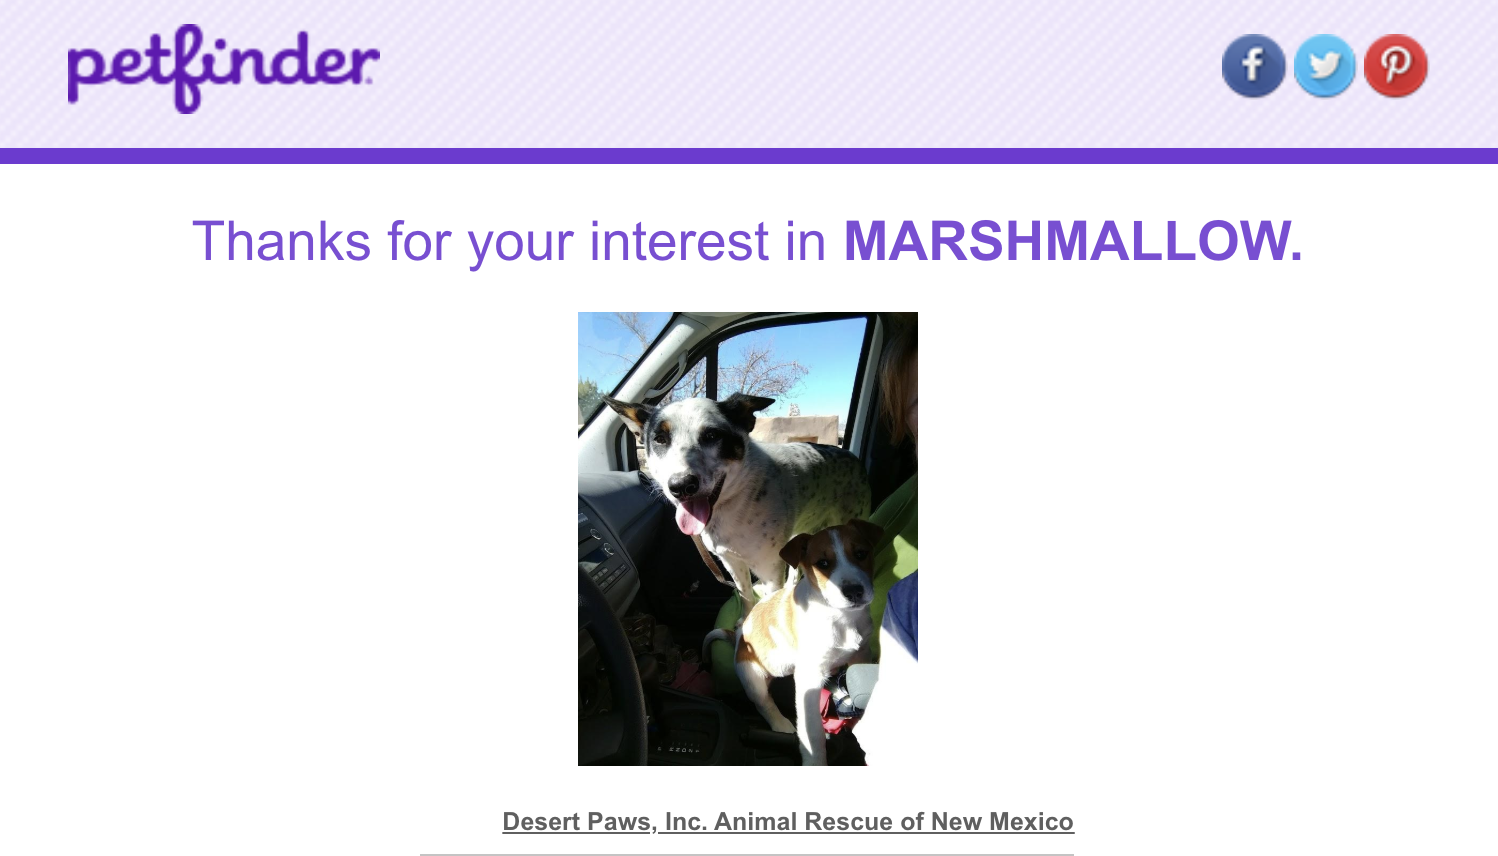 Marshmallow's adoption profile